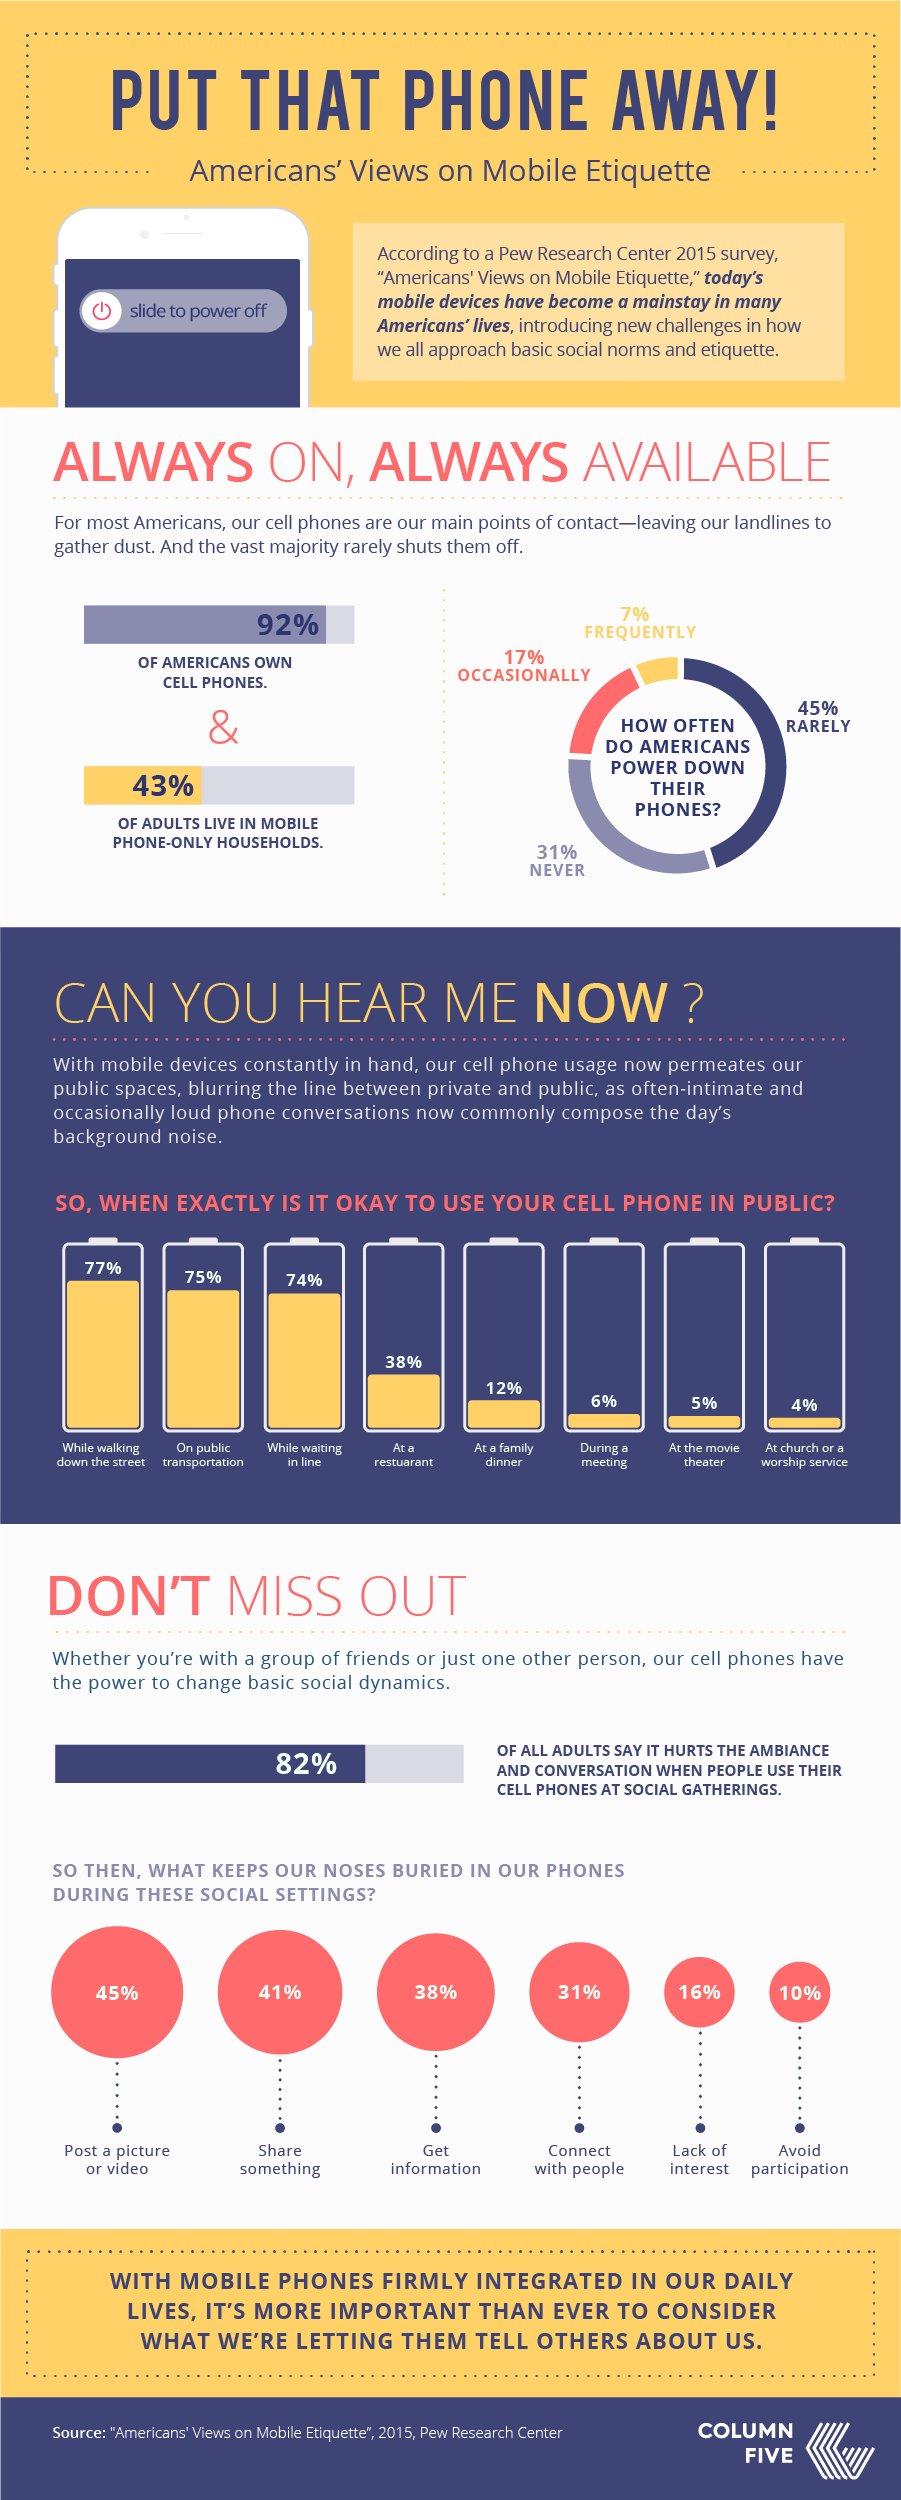 Americans' Views on Mobile Etiquette in 2020 Infographic